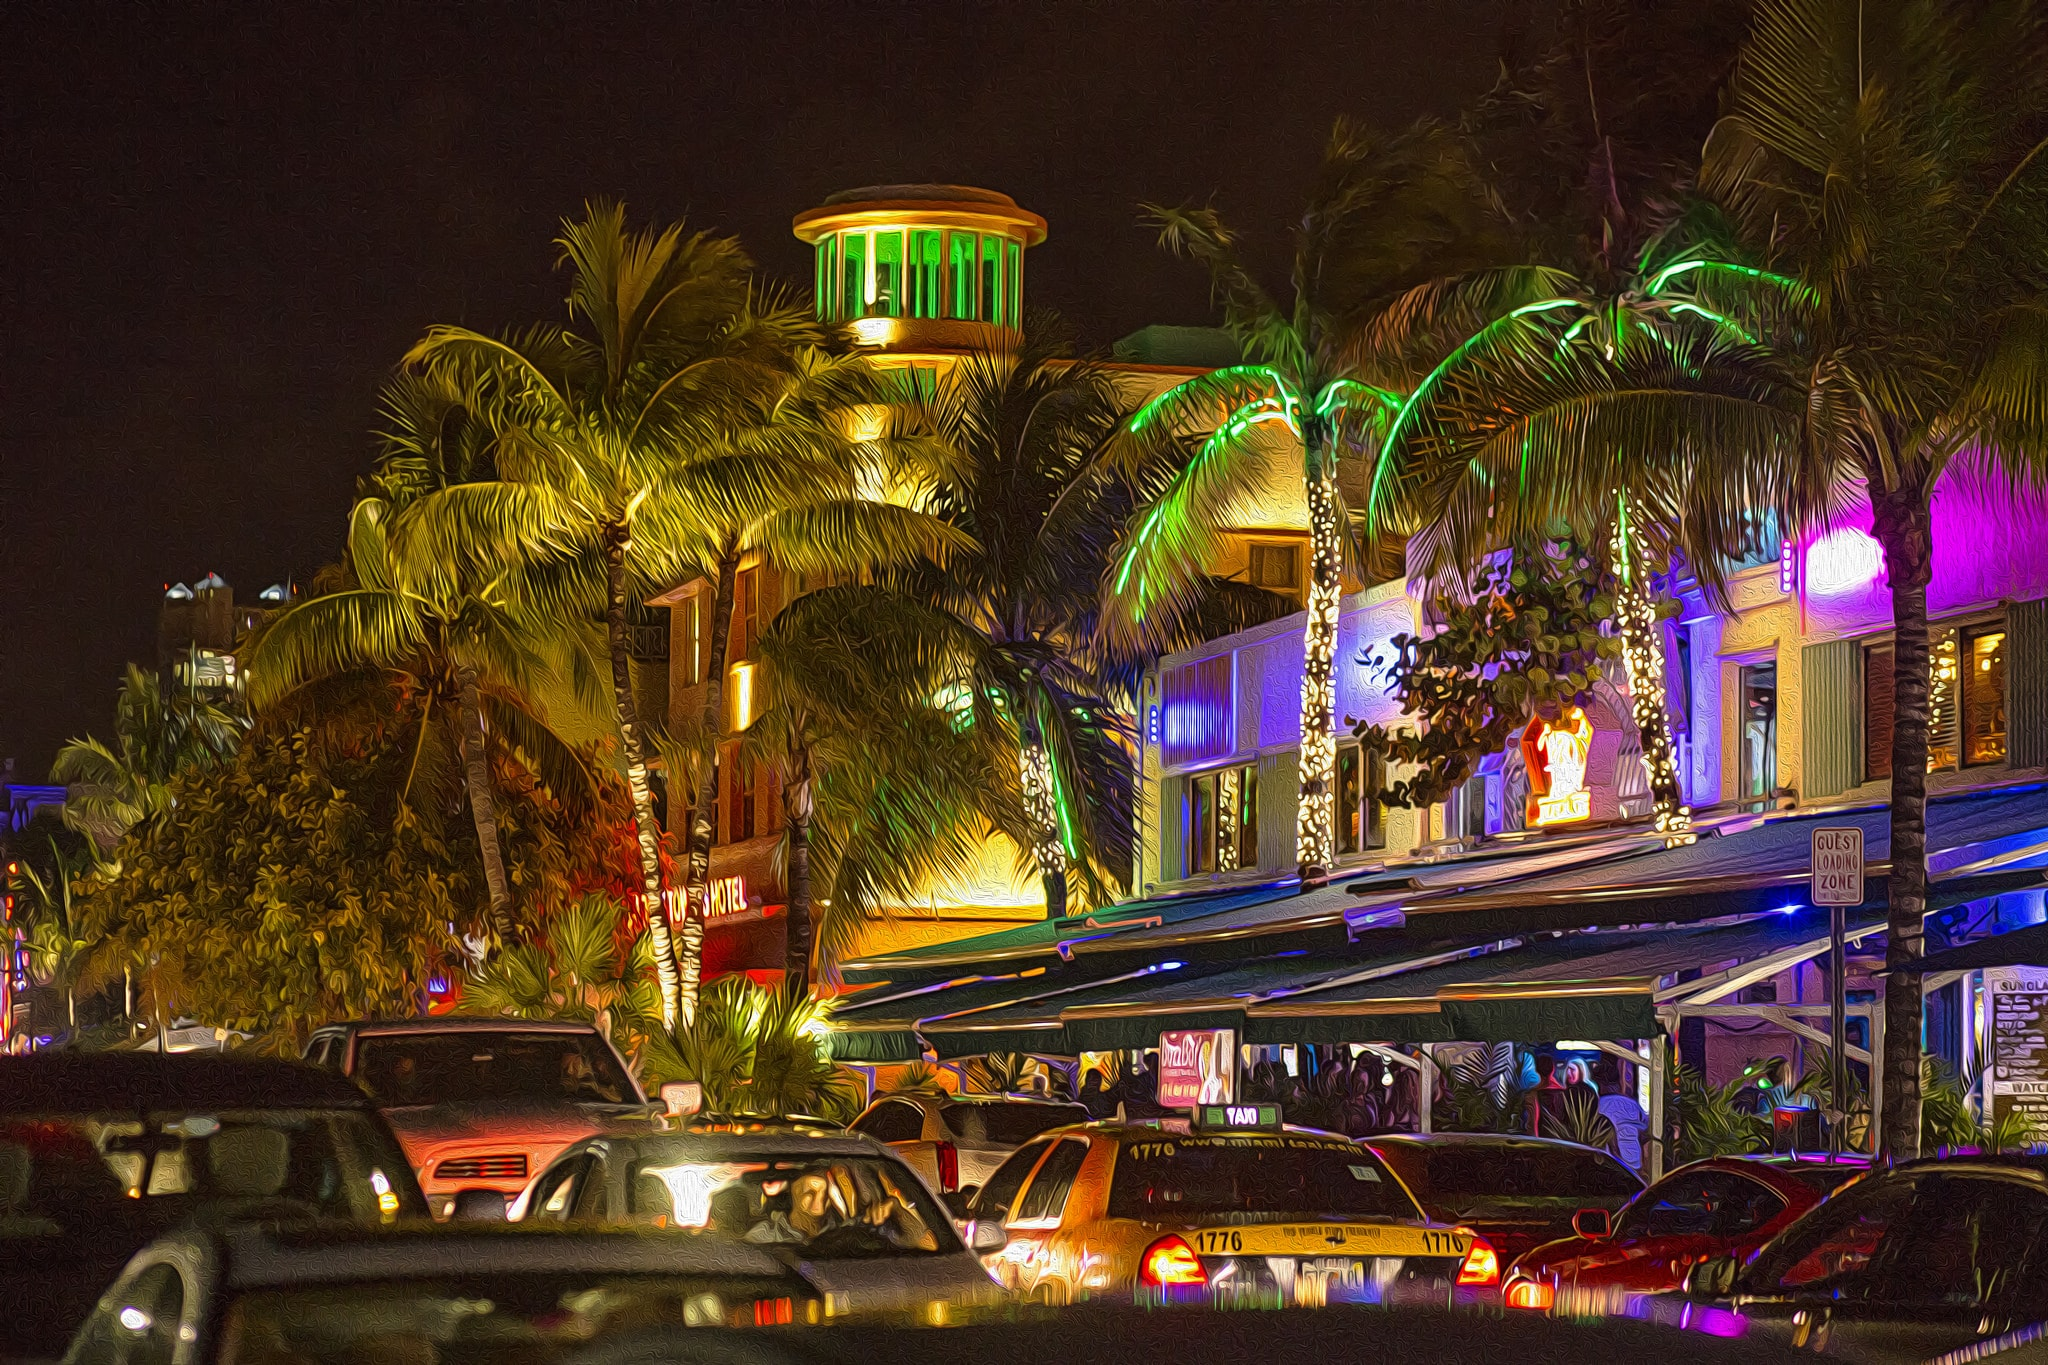 Best Places To Stay For Nightlife In Miami